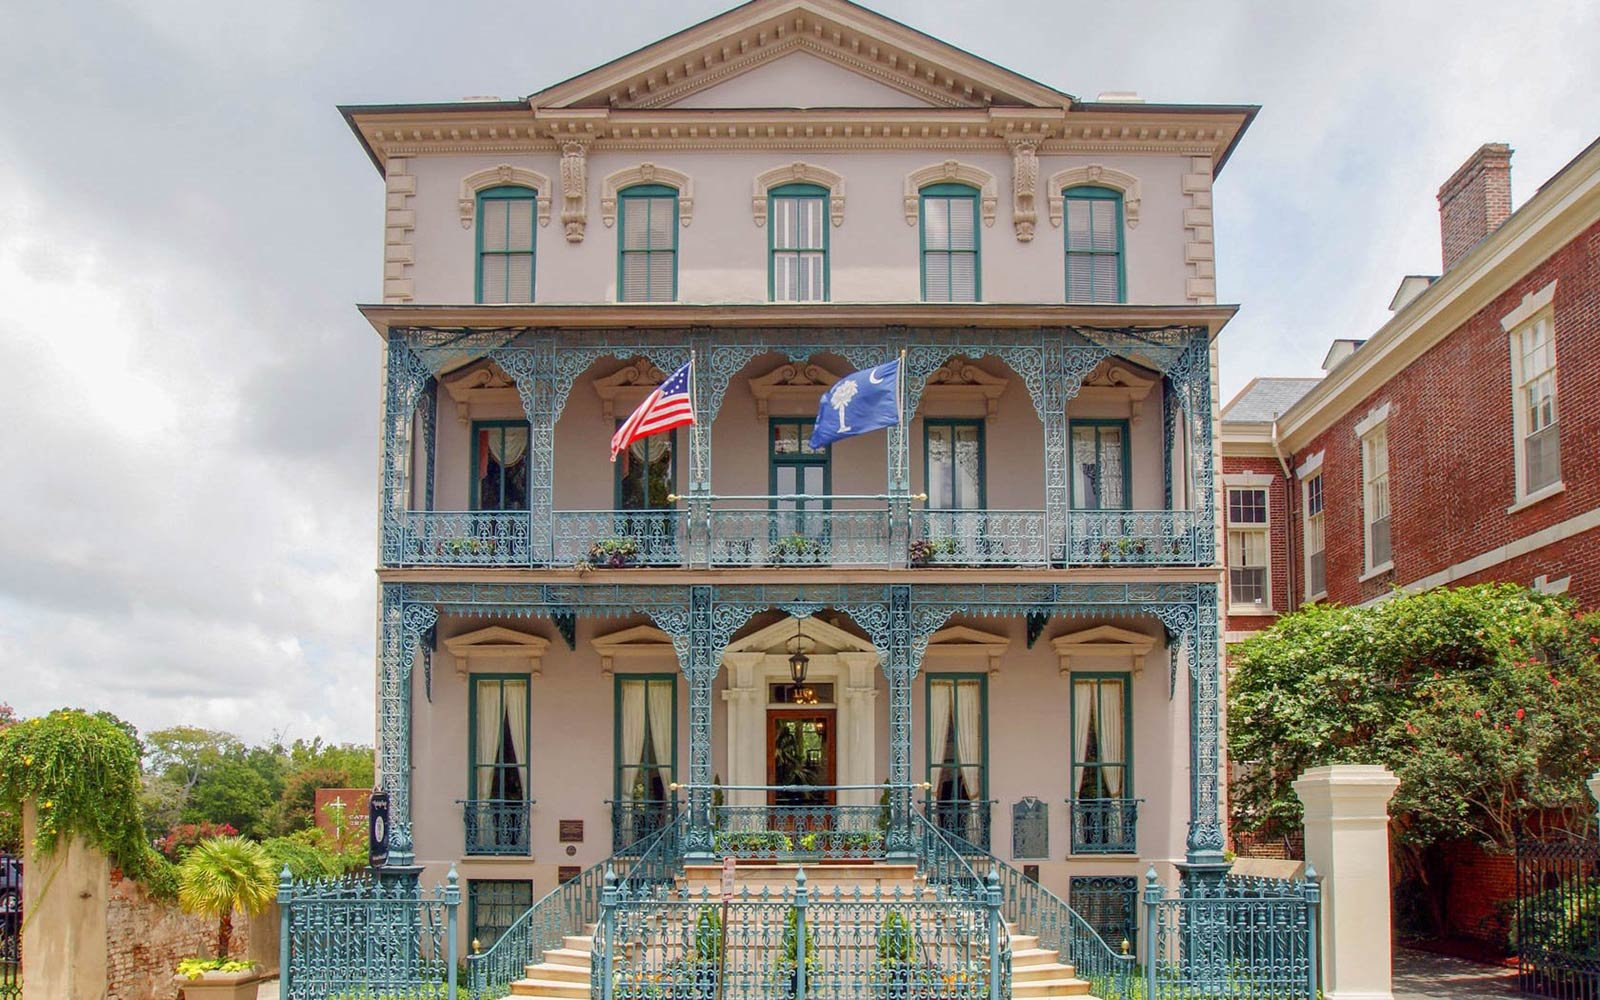 John Rutledge House, Charleston, South Carolina